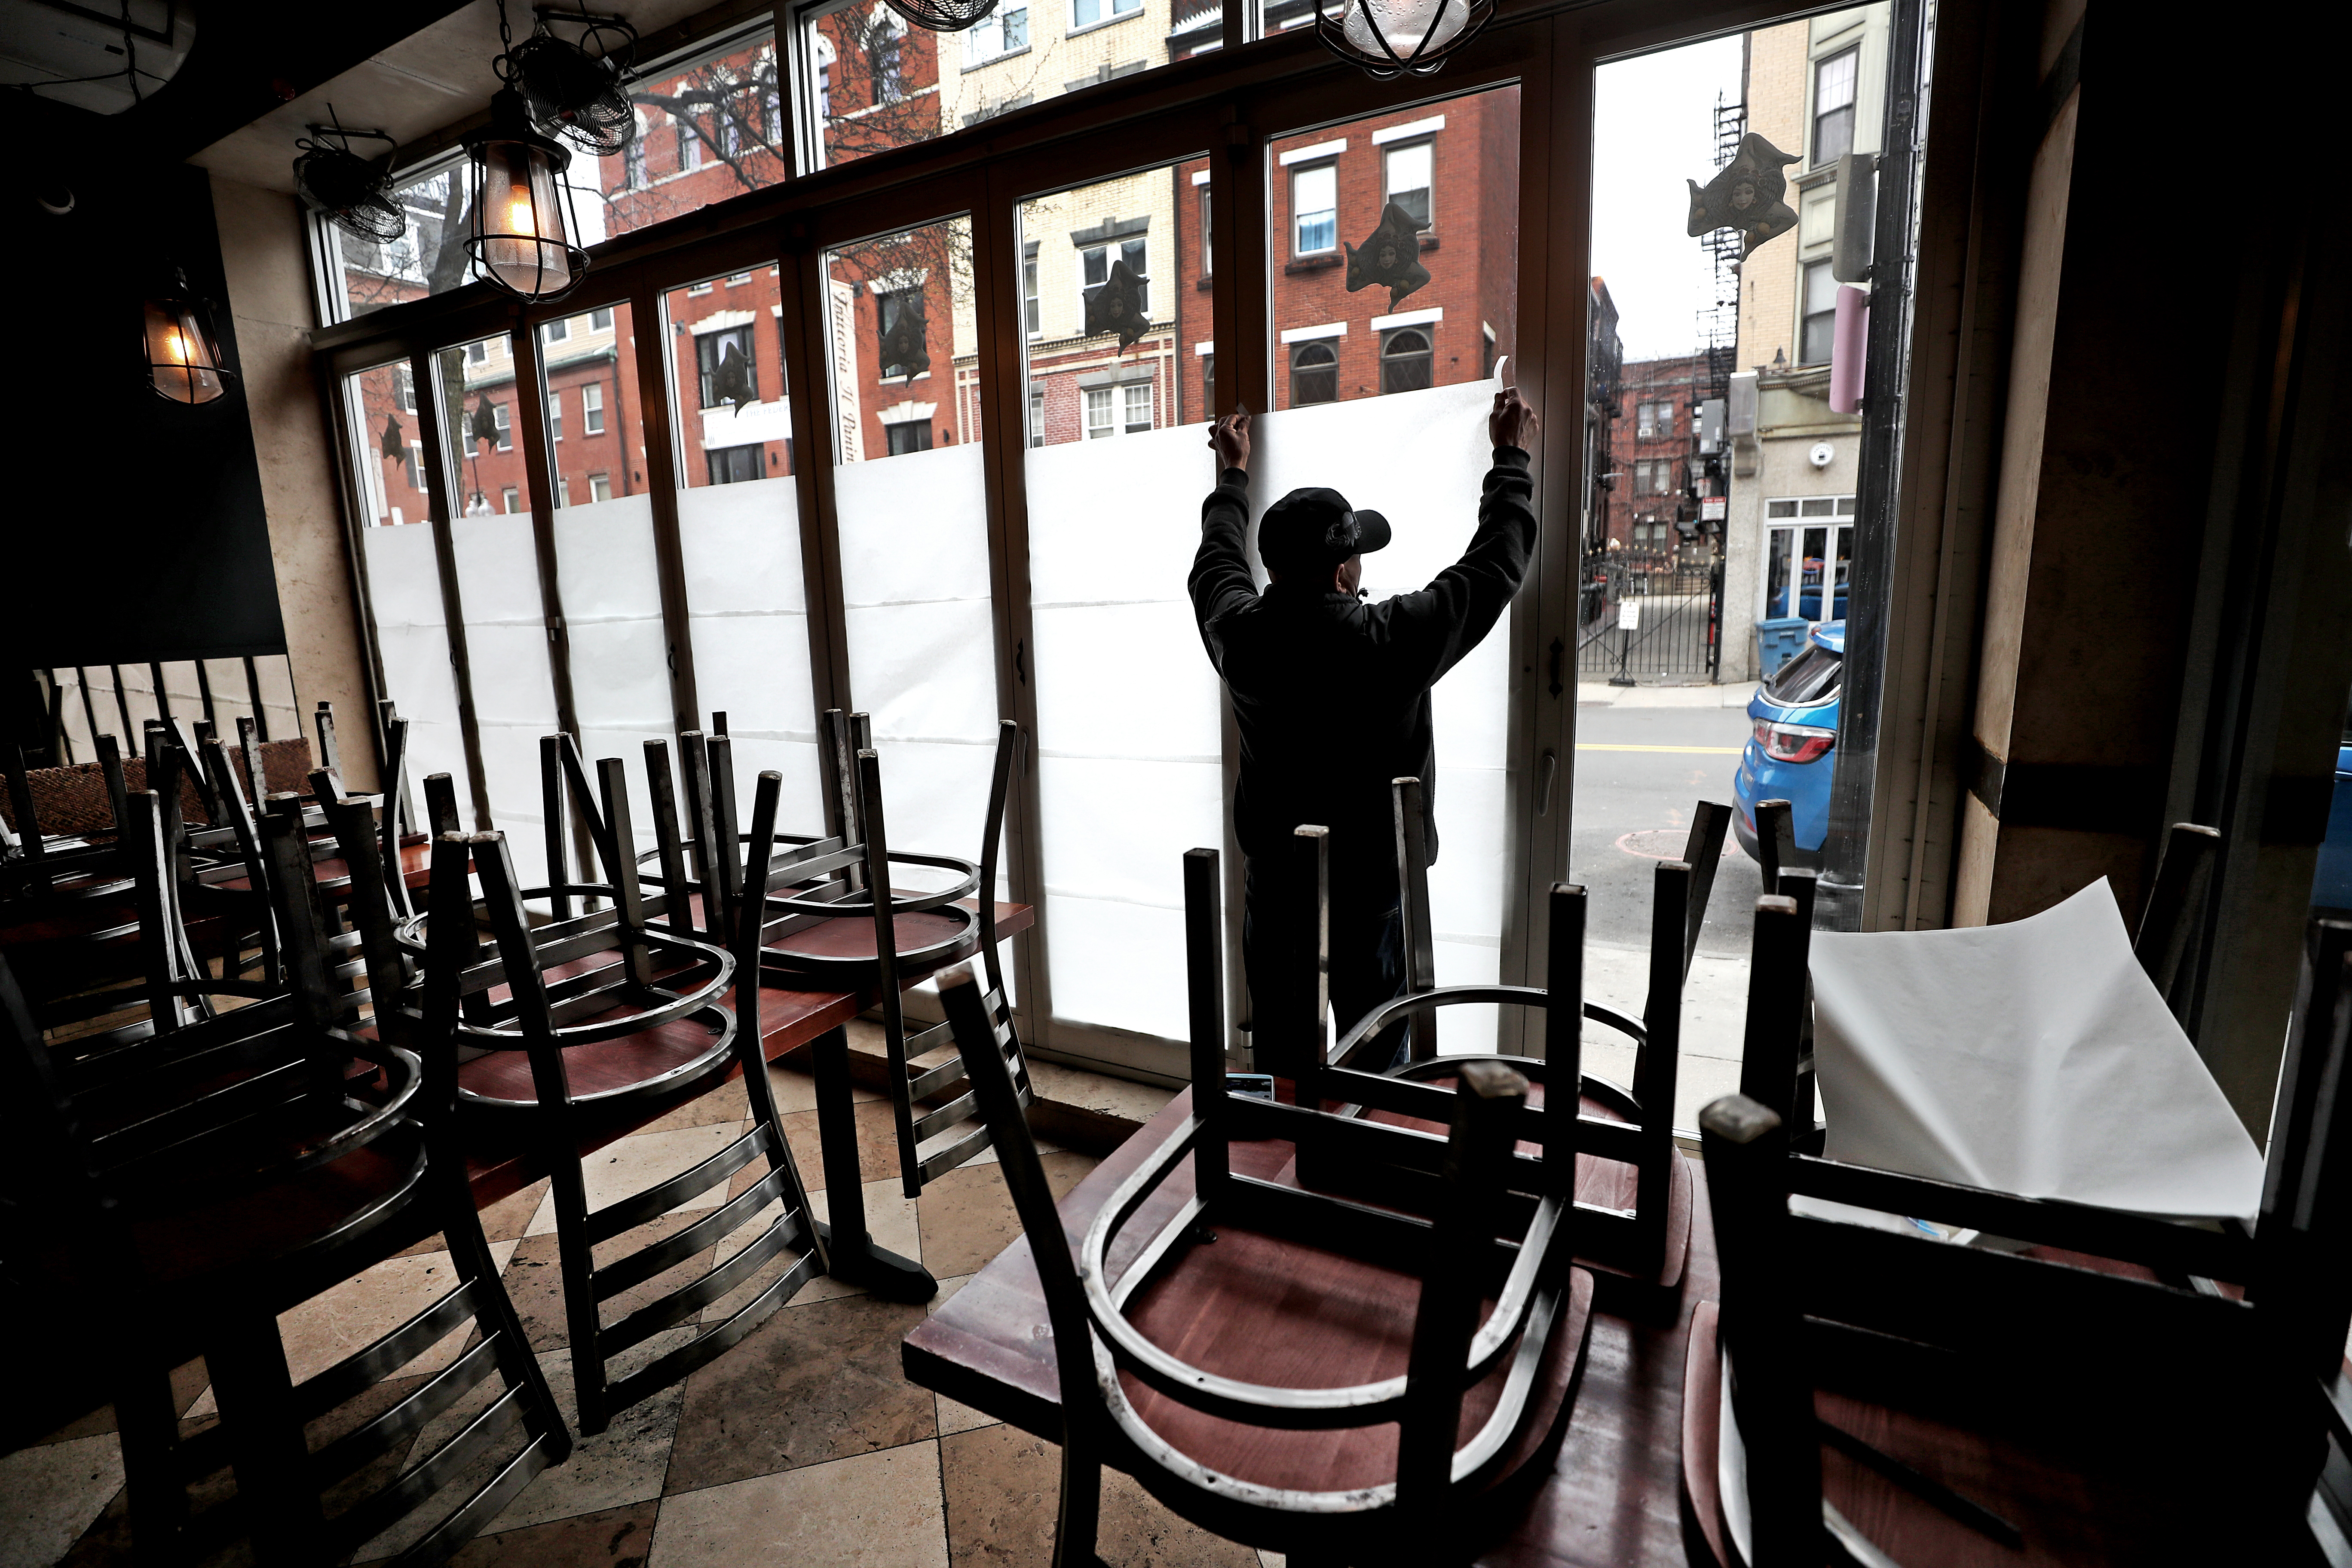 Man putting up paper over restaurant windows amid chairs stacked on top of tables.